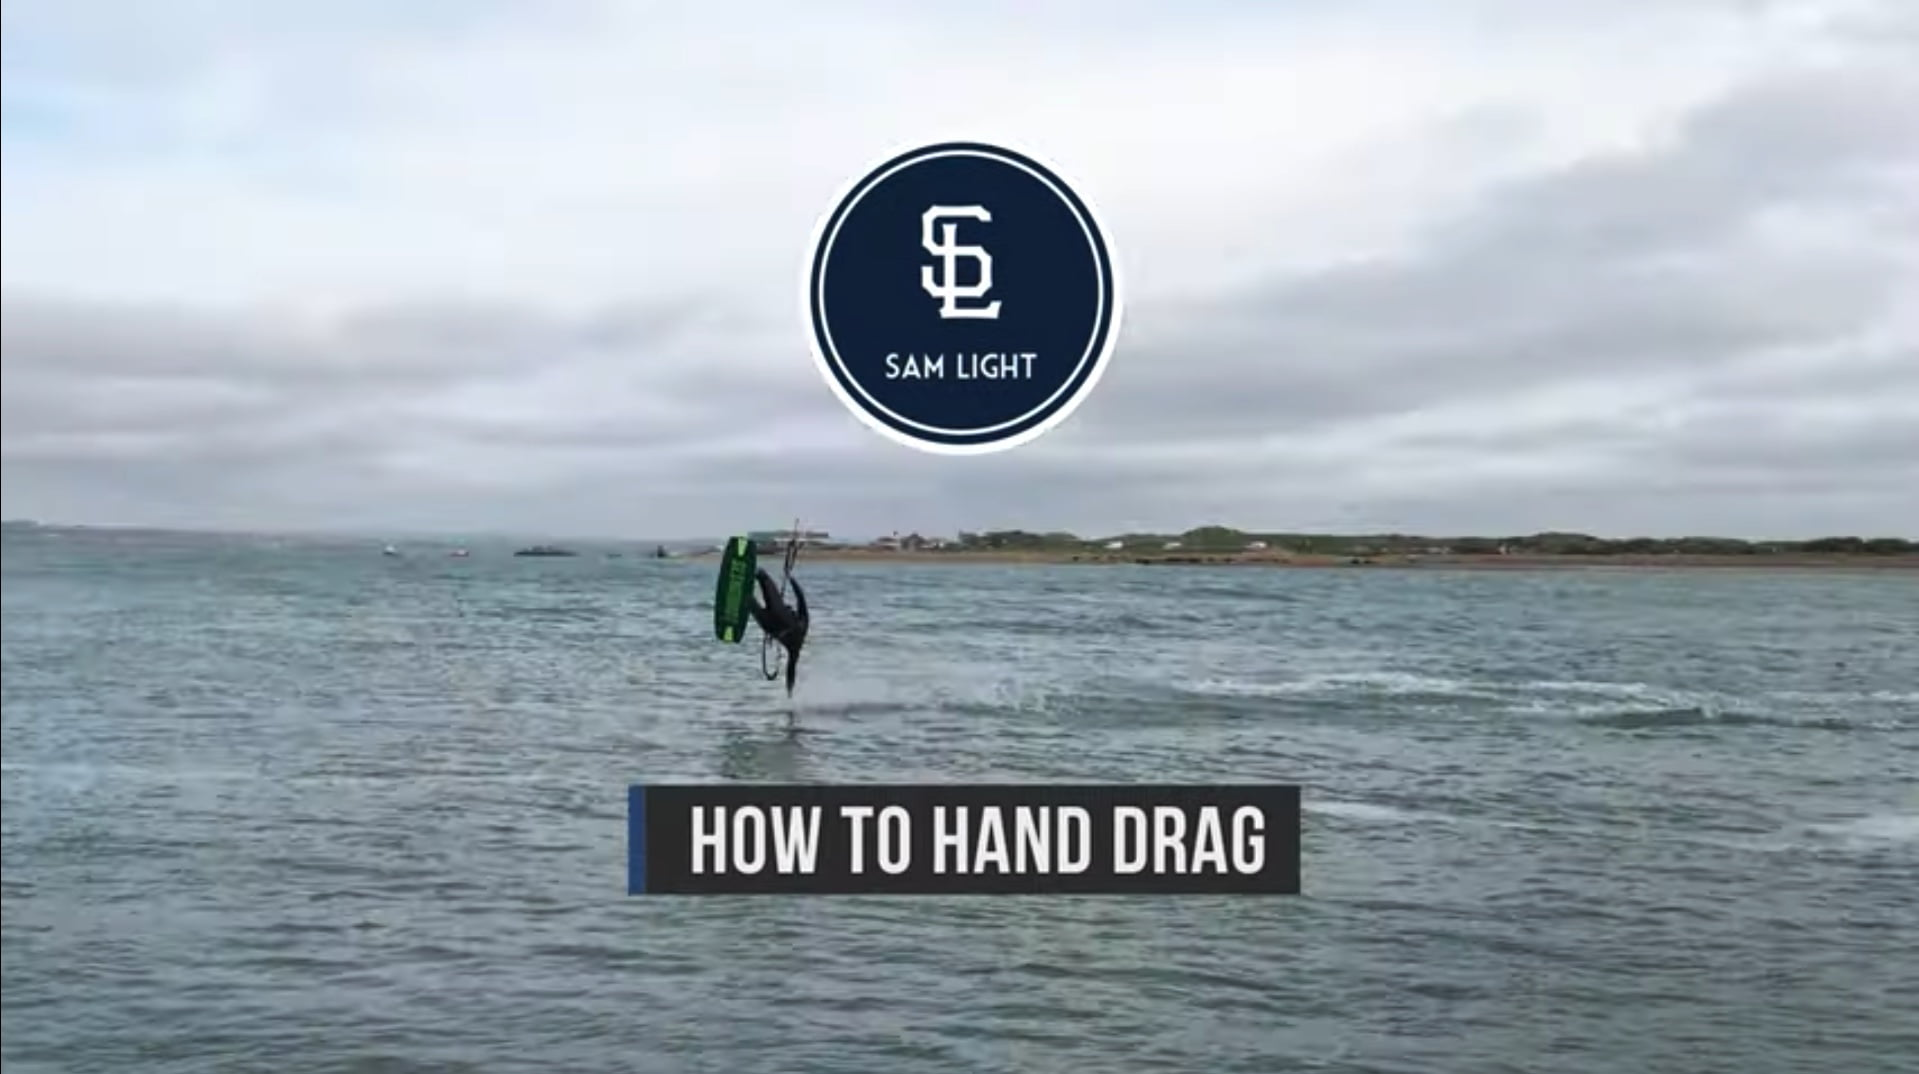 Hand drag hogyan video